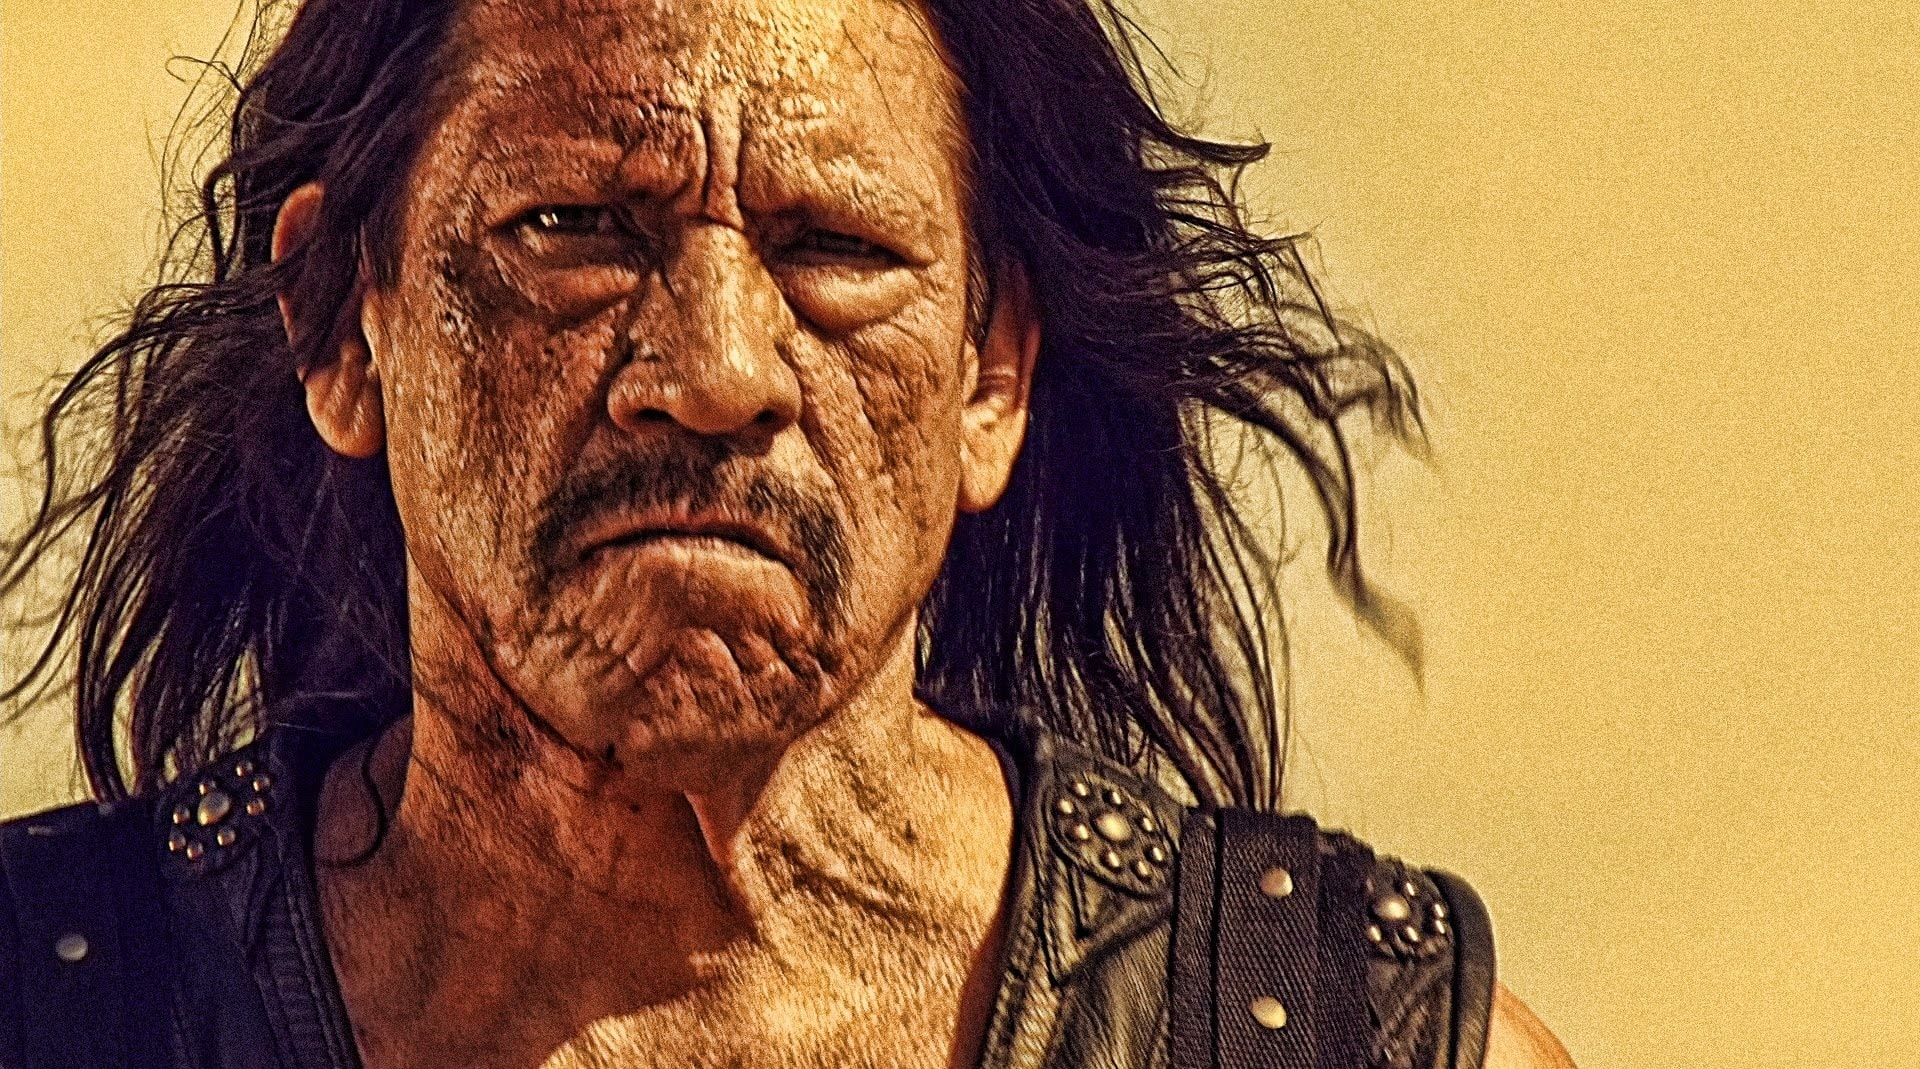 Danny Trejo widescreen wallpapers